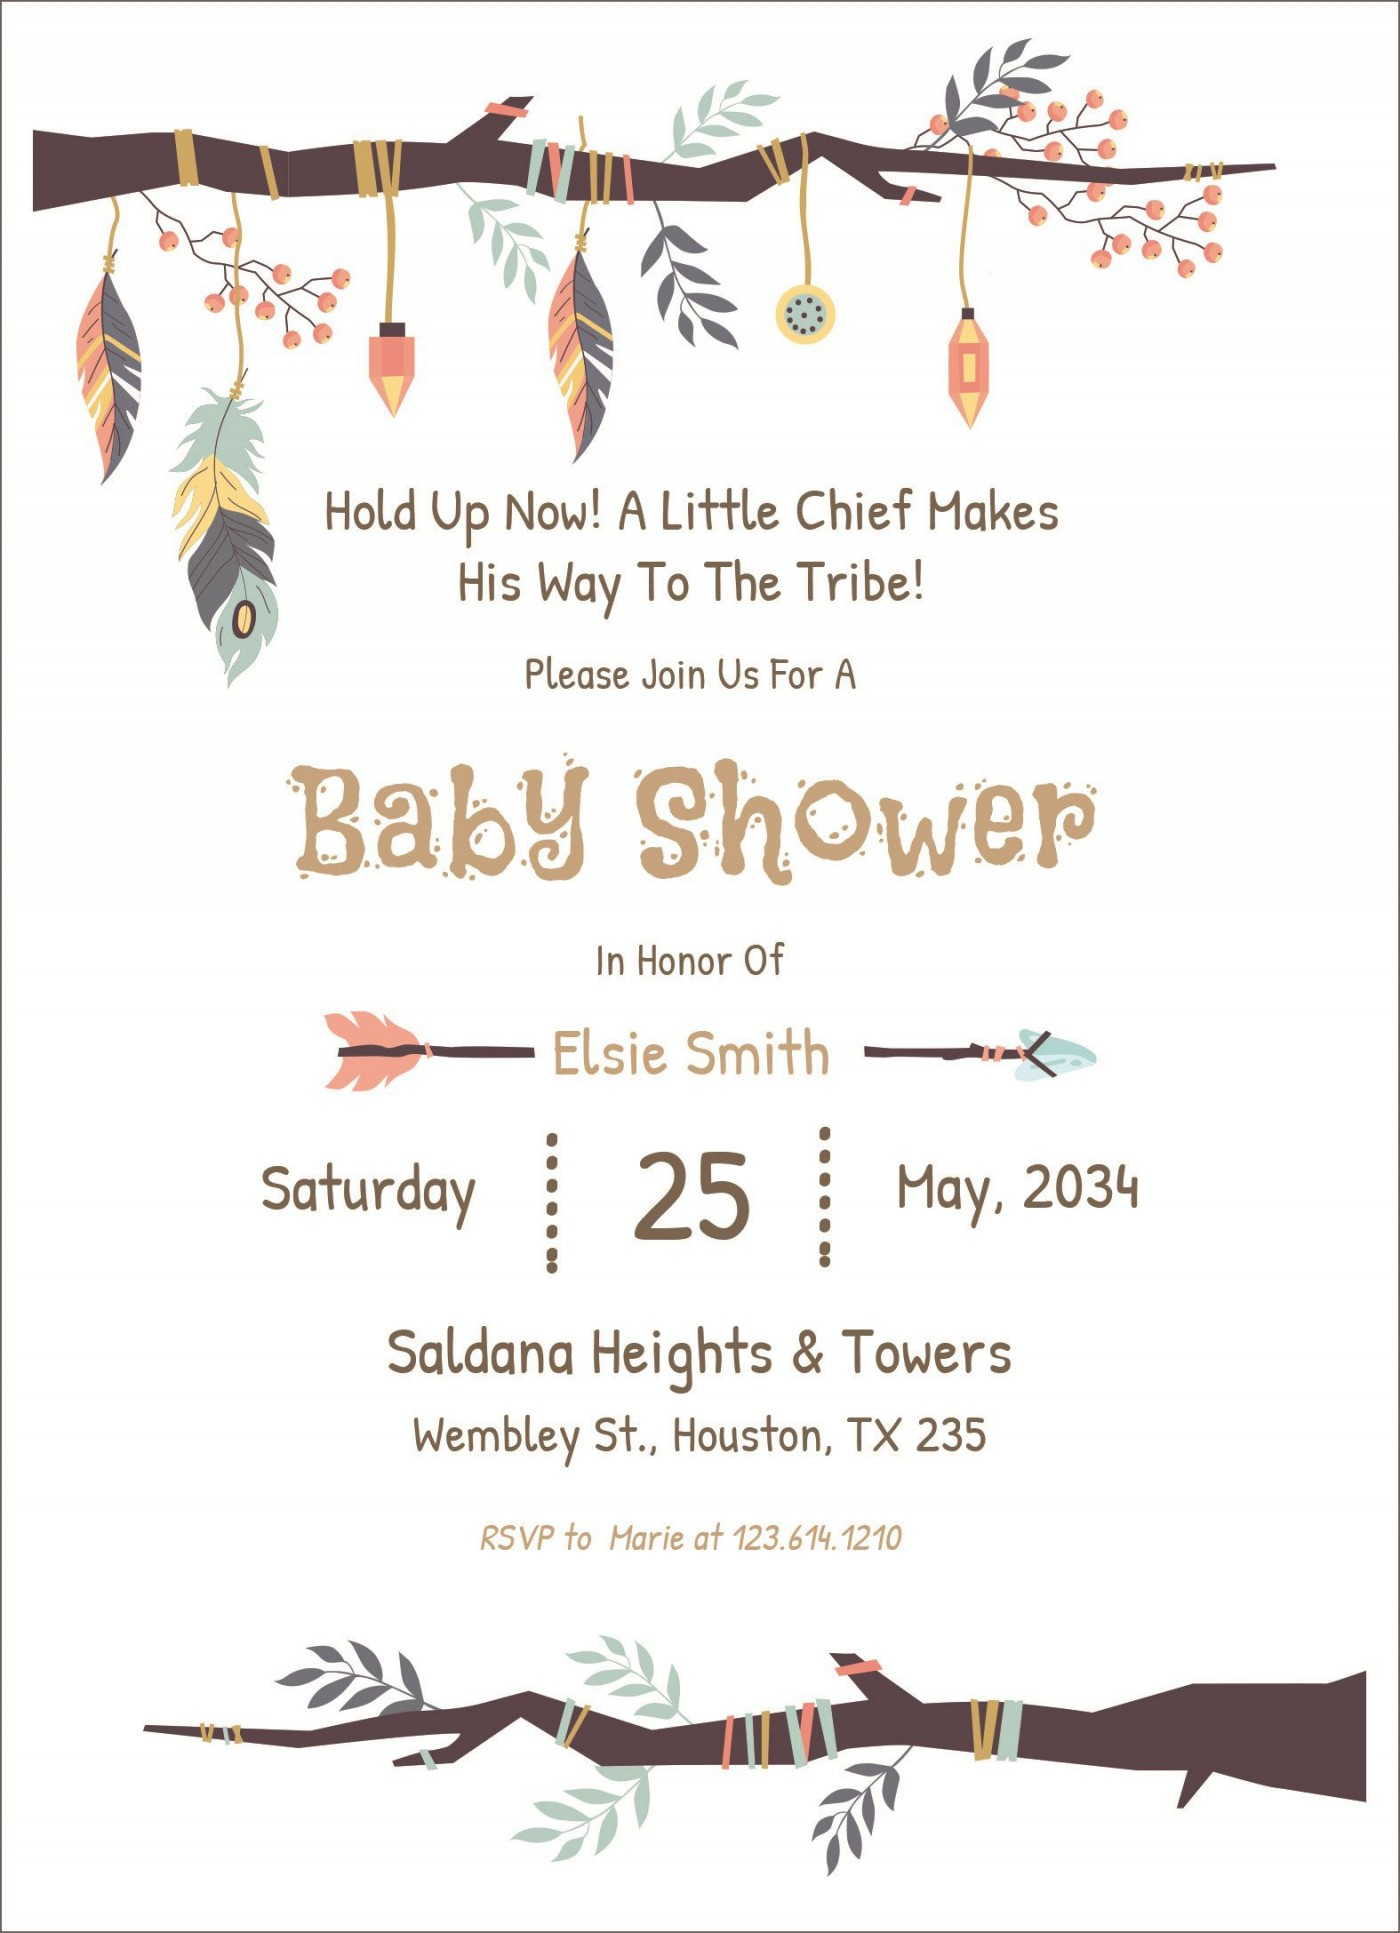 005 Amazing Free Baby Shower Card Template For Word High Def 1400